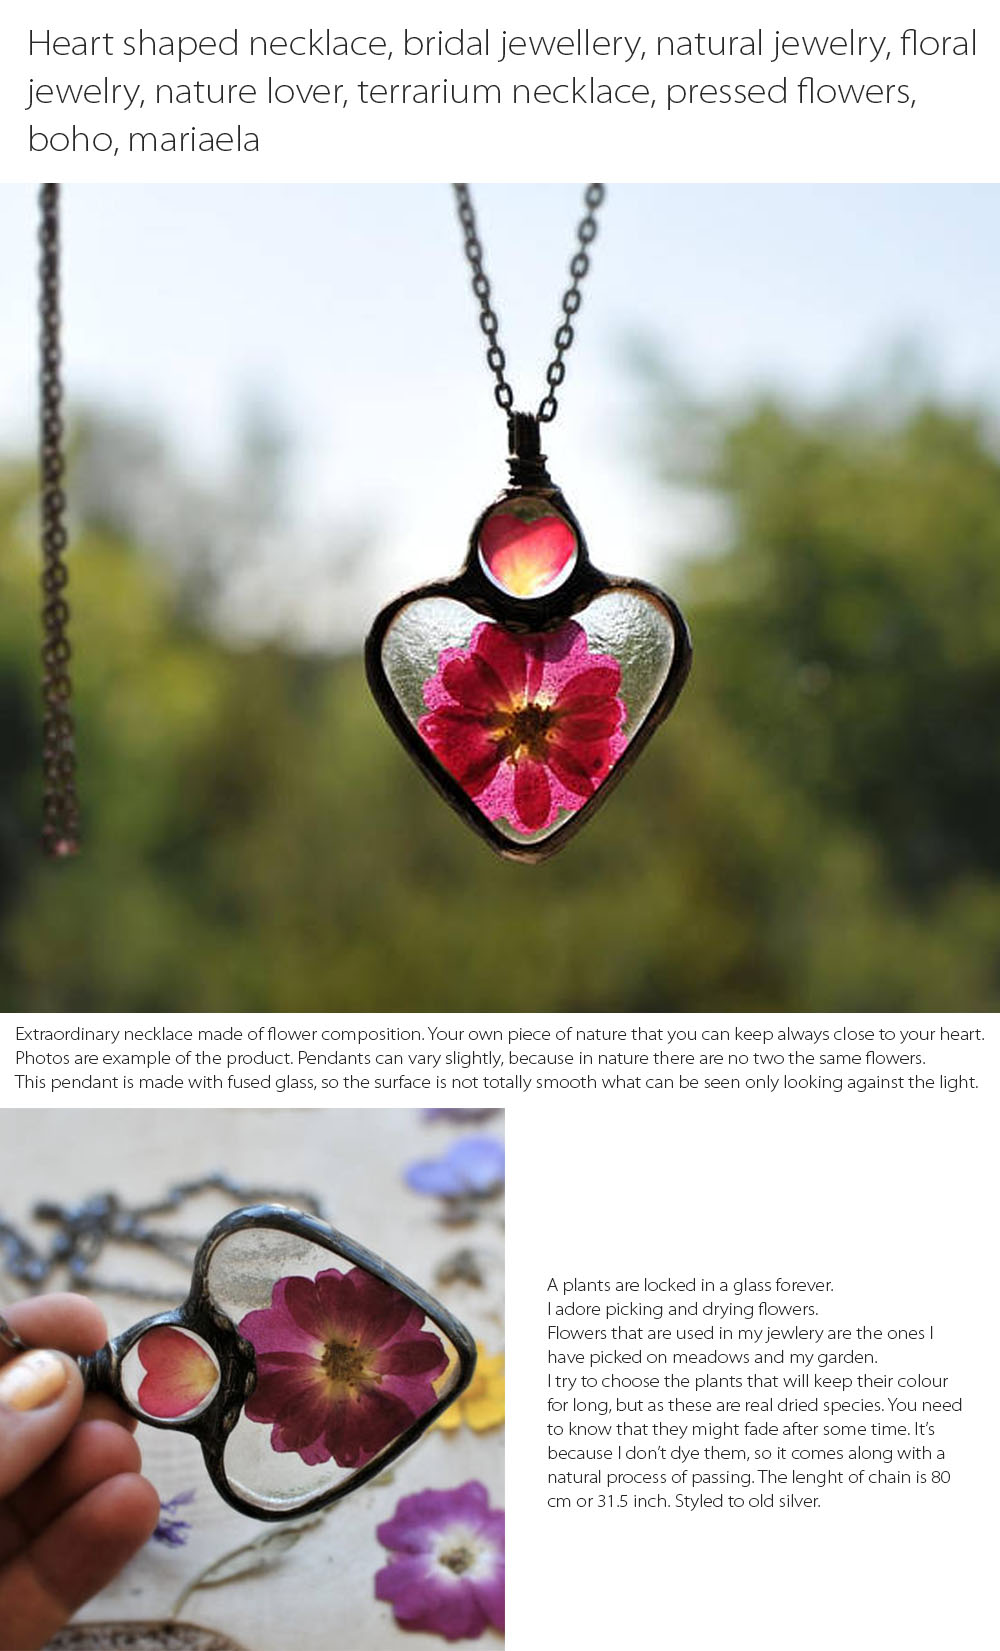 2Heart Shaped Necklace Terrarium Necklace